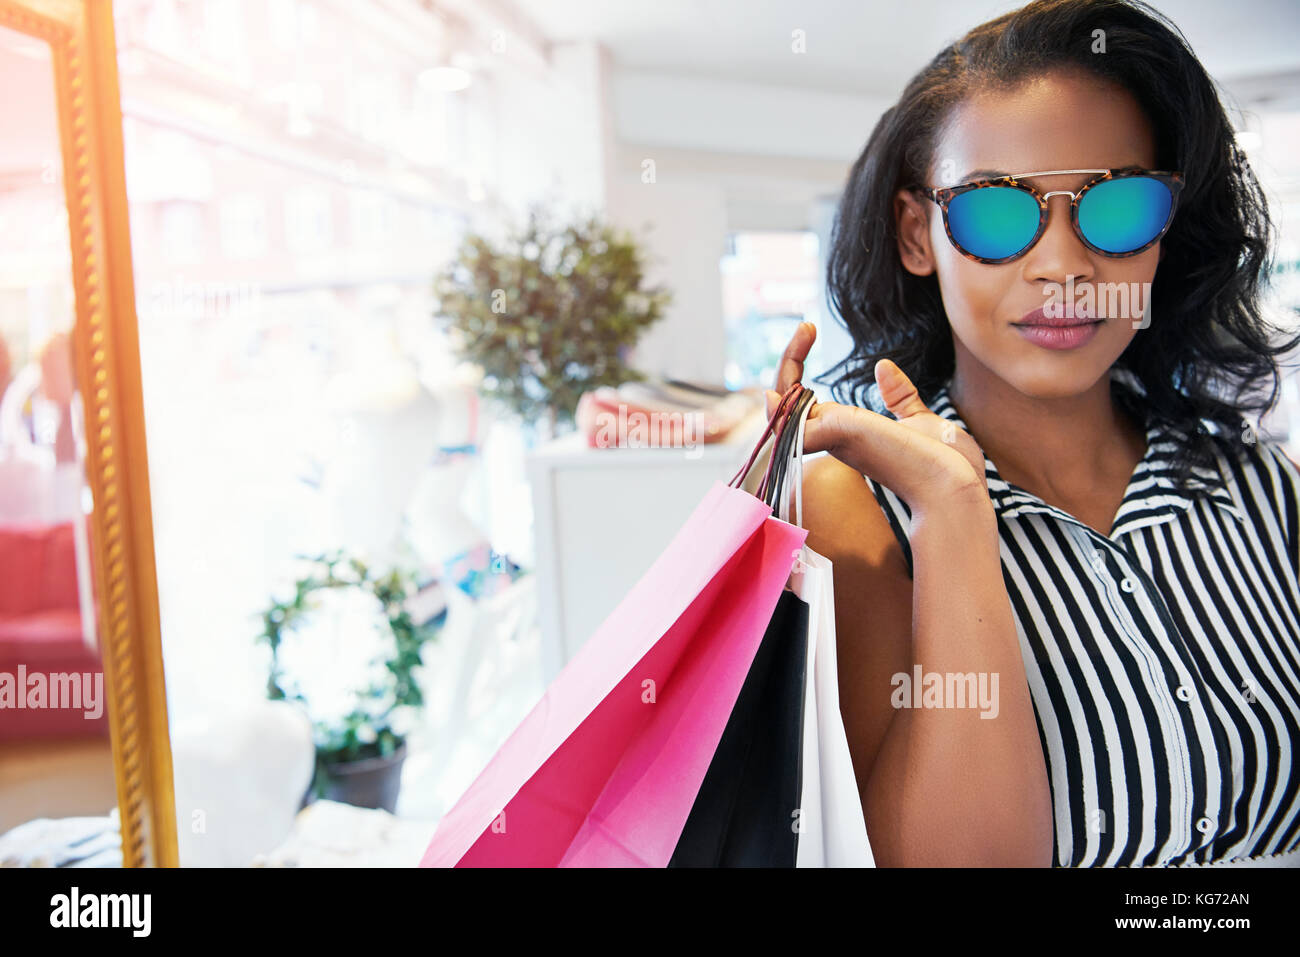 6cb9c70ea8 Gorgeous African female shopper in striped blouse holding bags with calm  expression - Stock Image